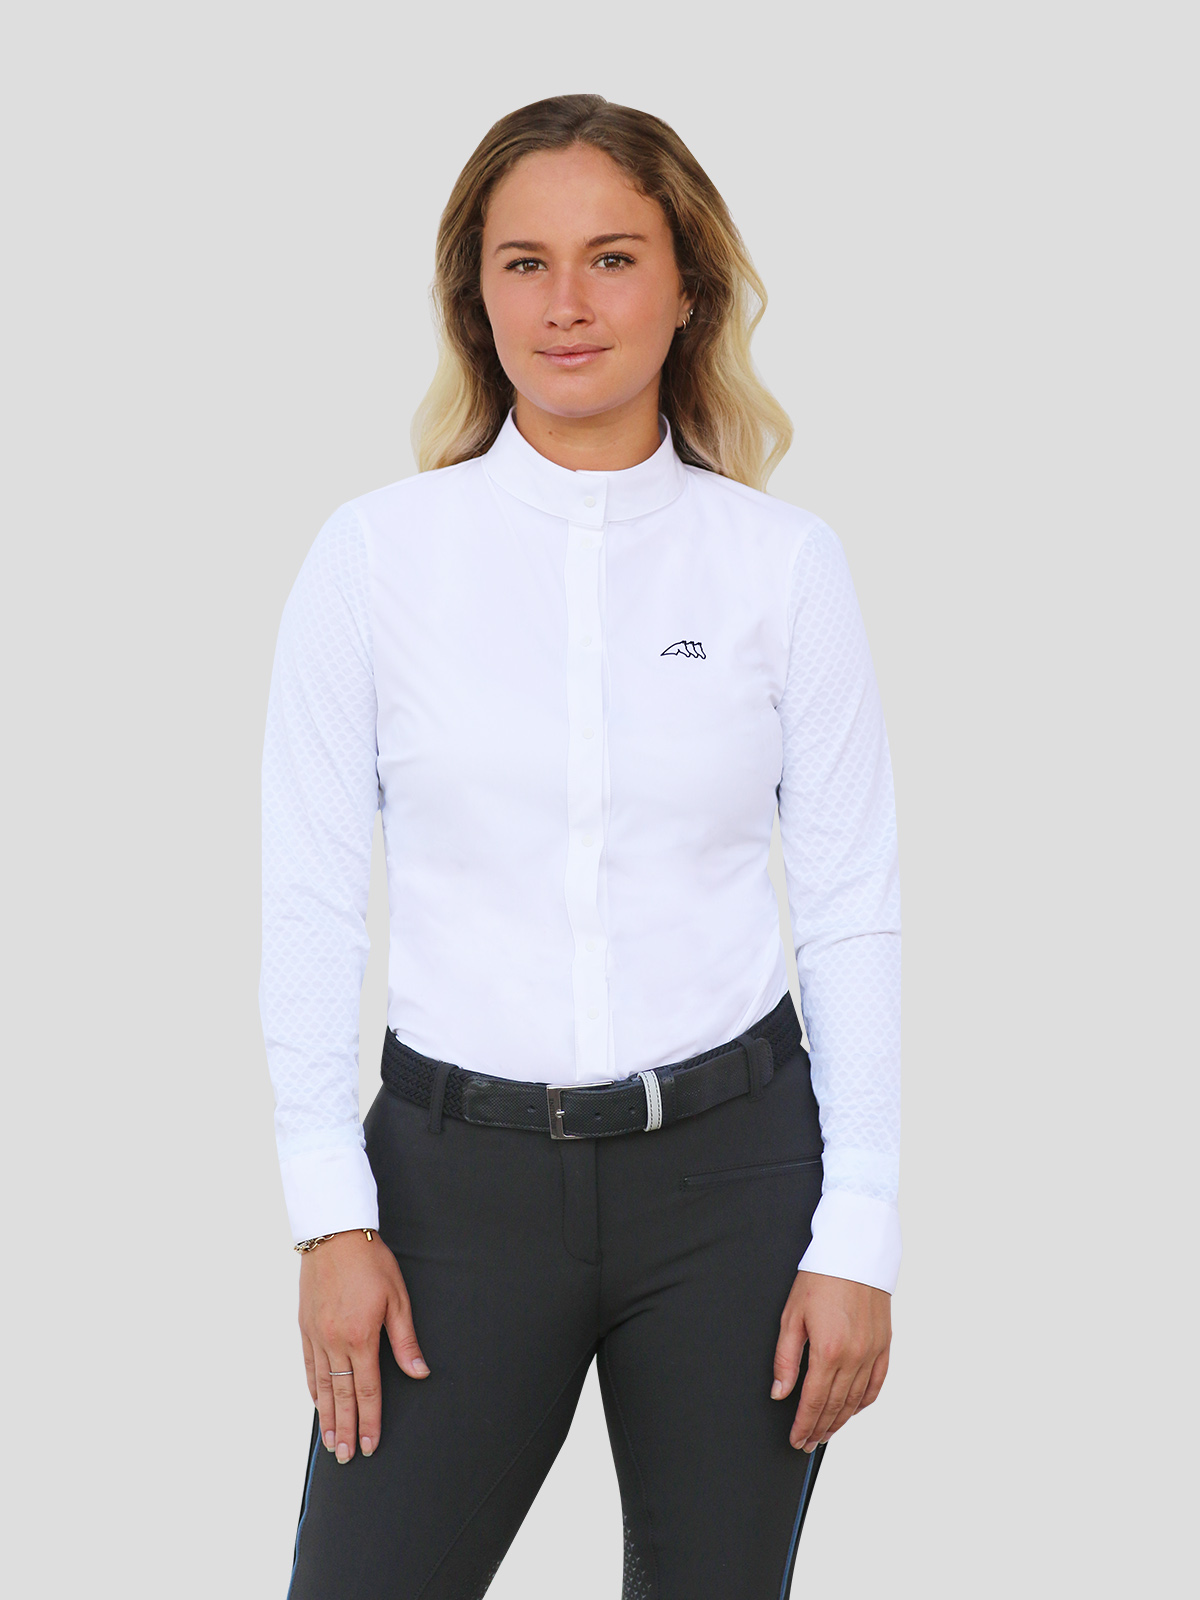 Equiline Women/'s Tournament Blouse Lindy